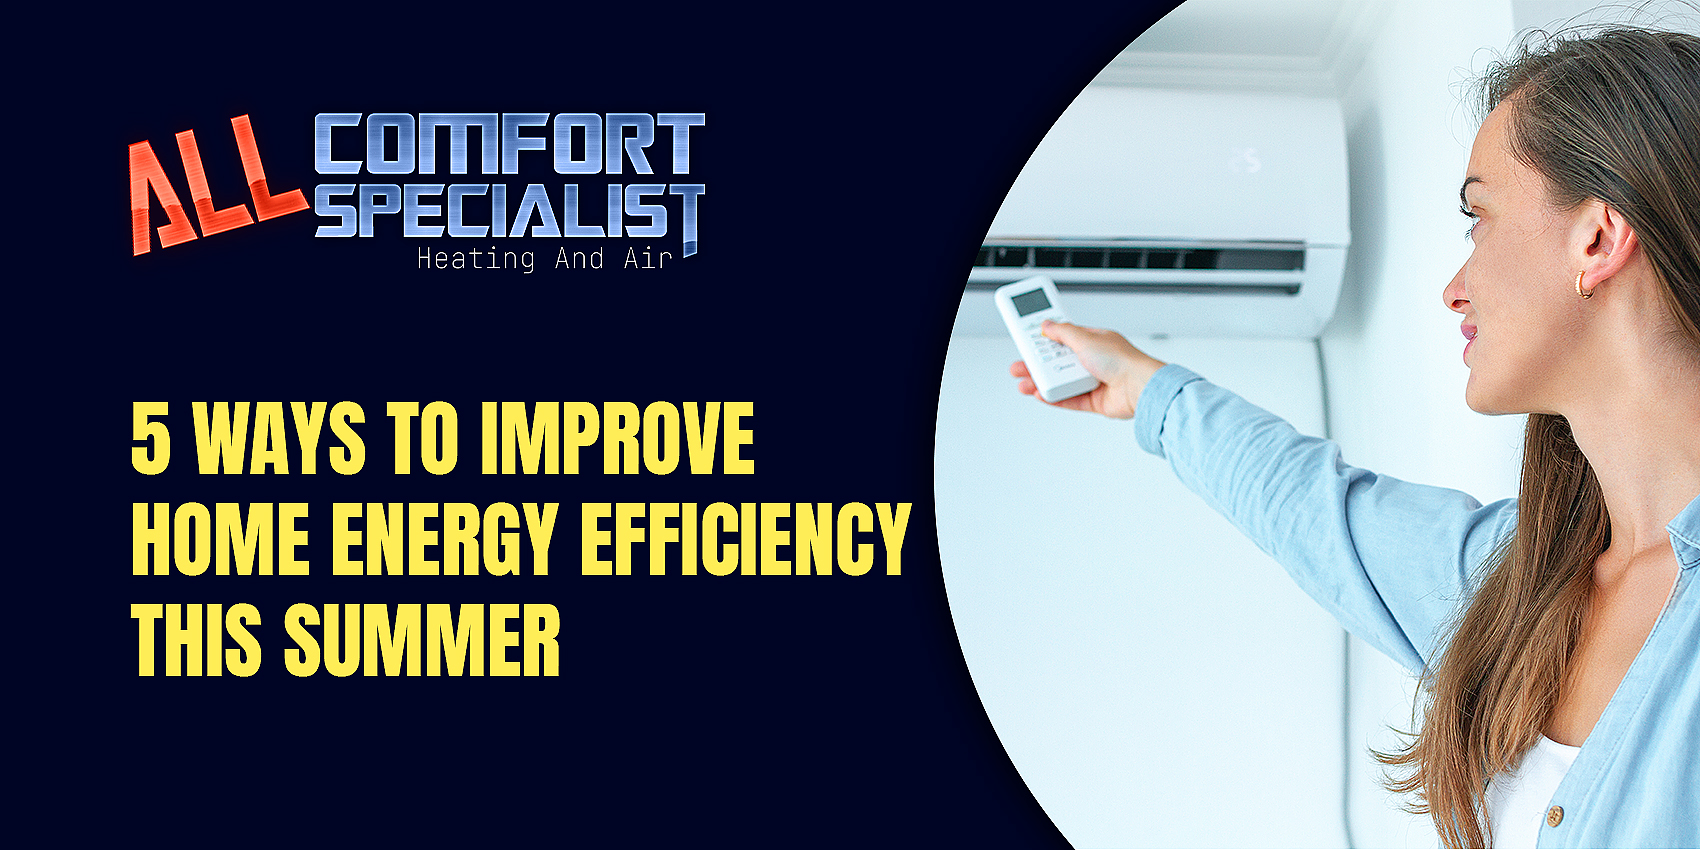 5 Ways to Improve Home Energy Efficiency This Summer